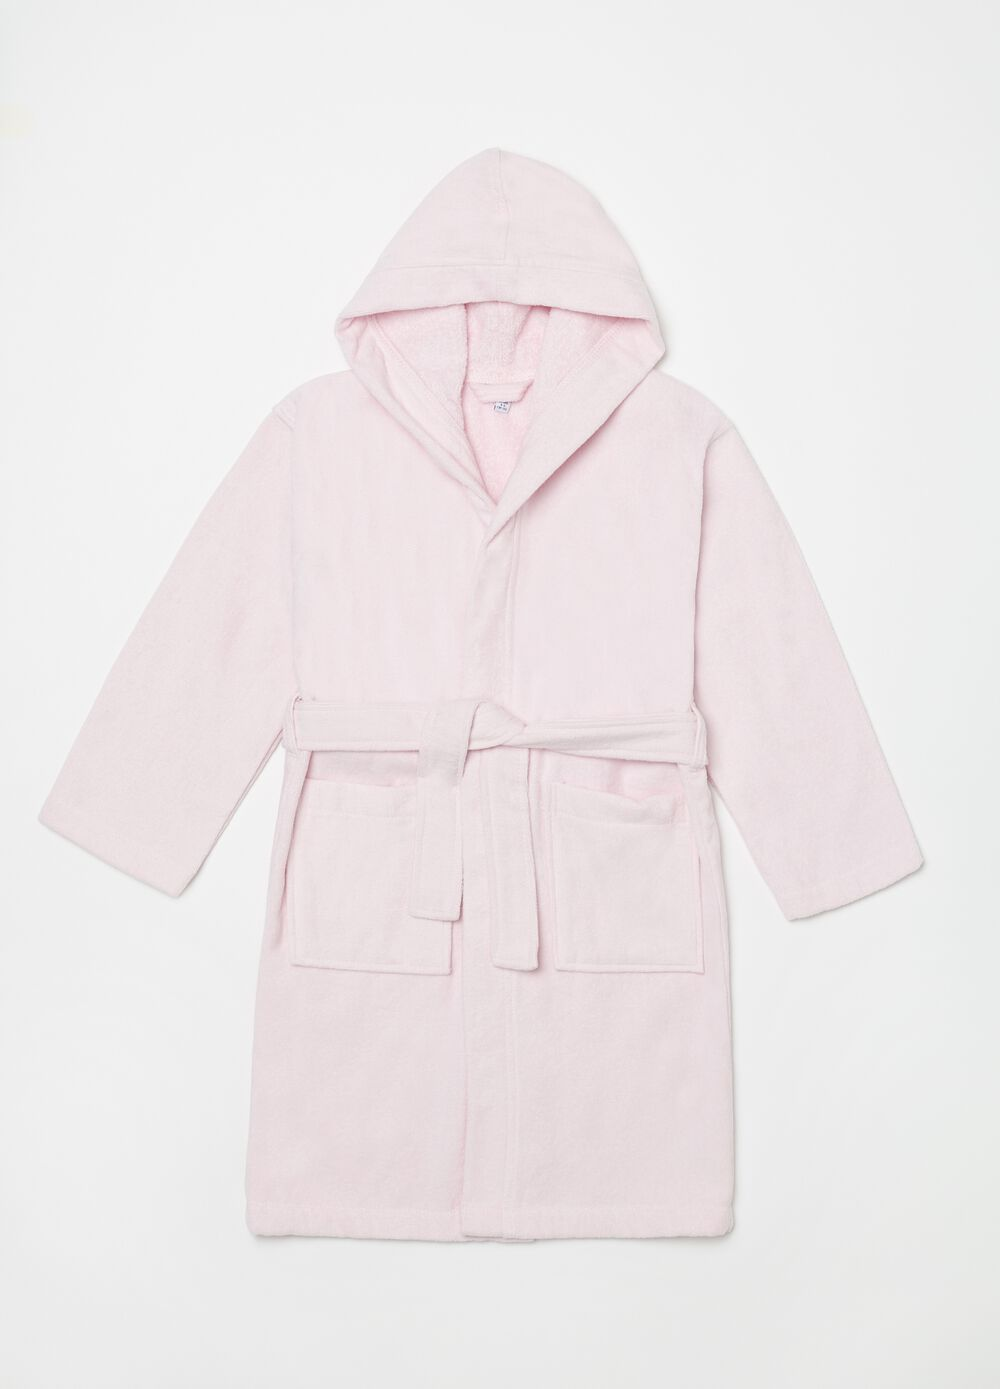 Bathrobe in 100% cotton with hood